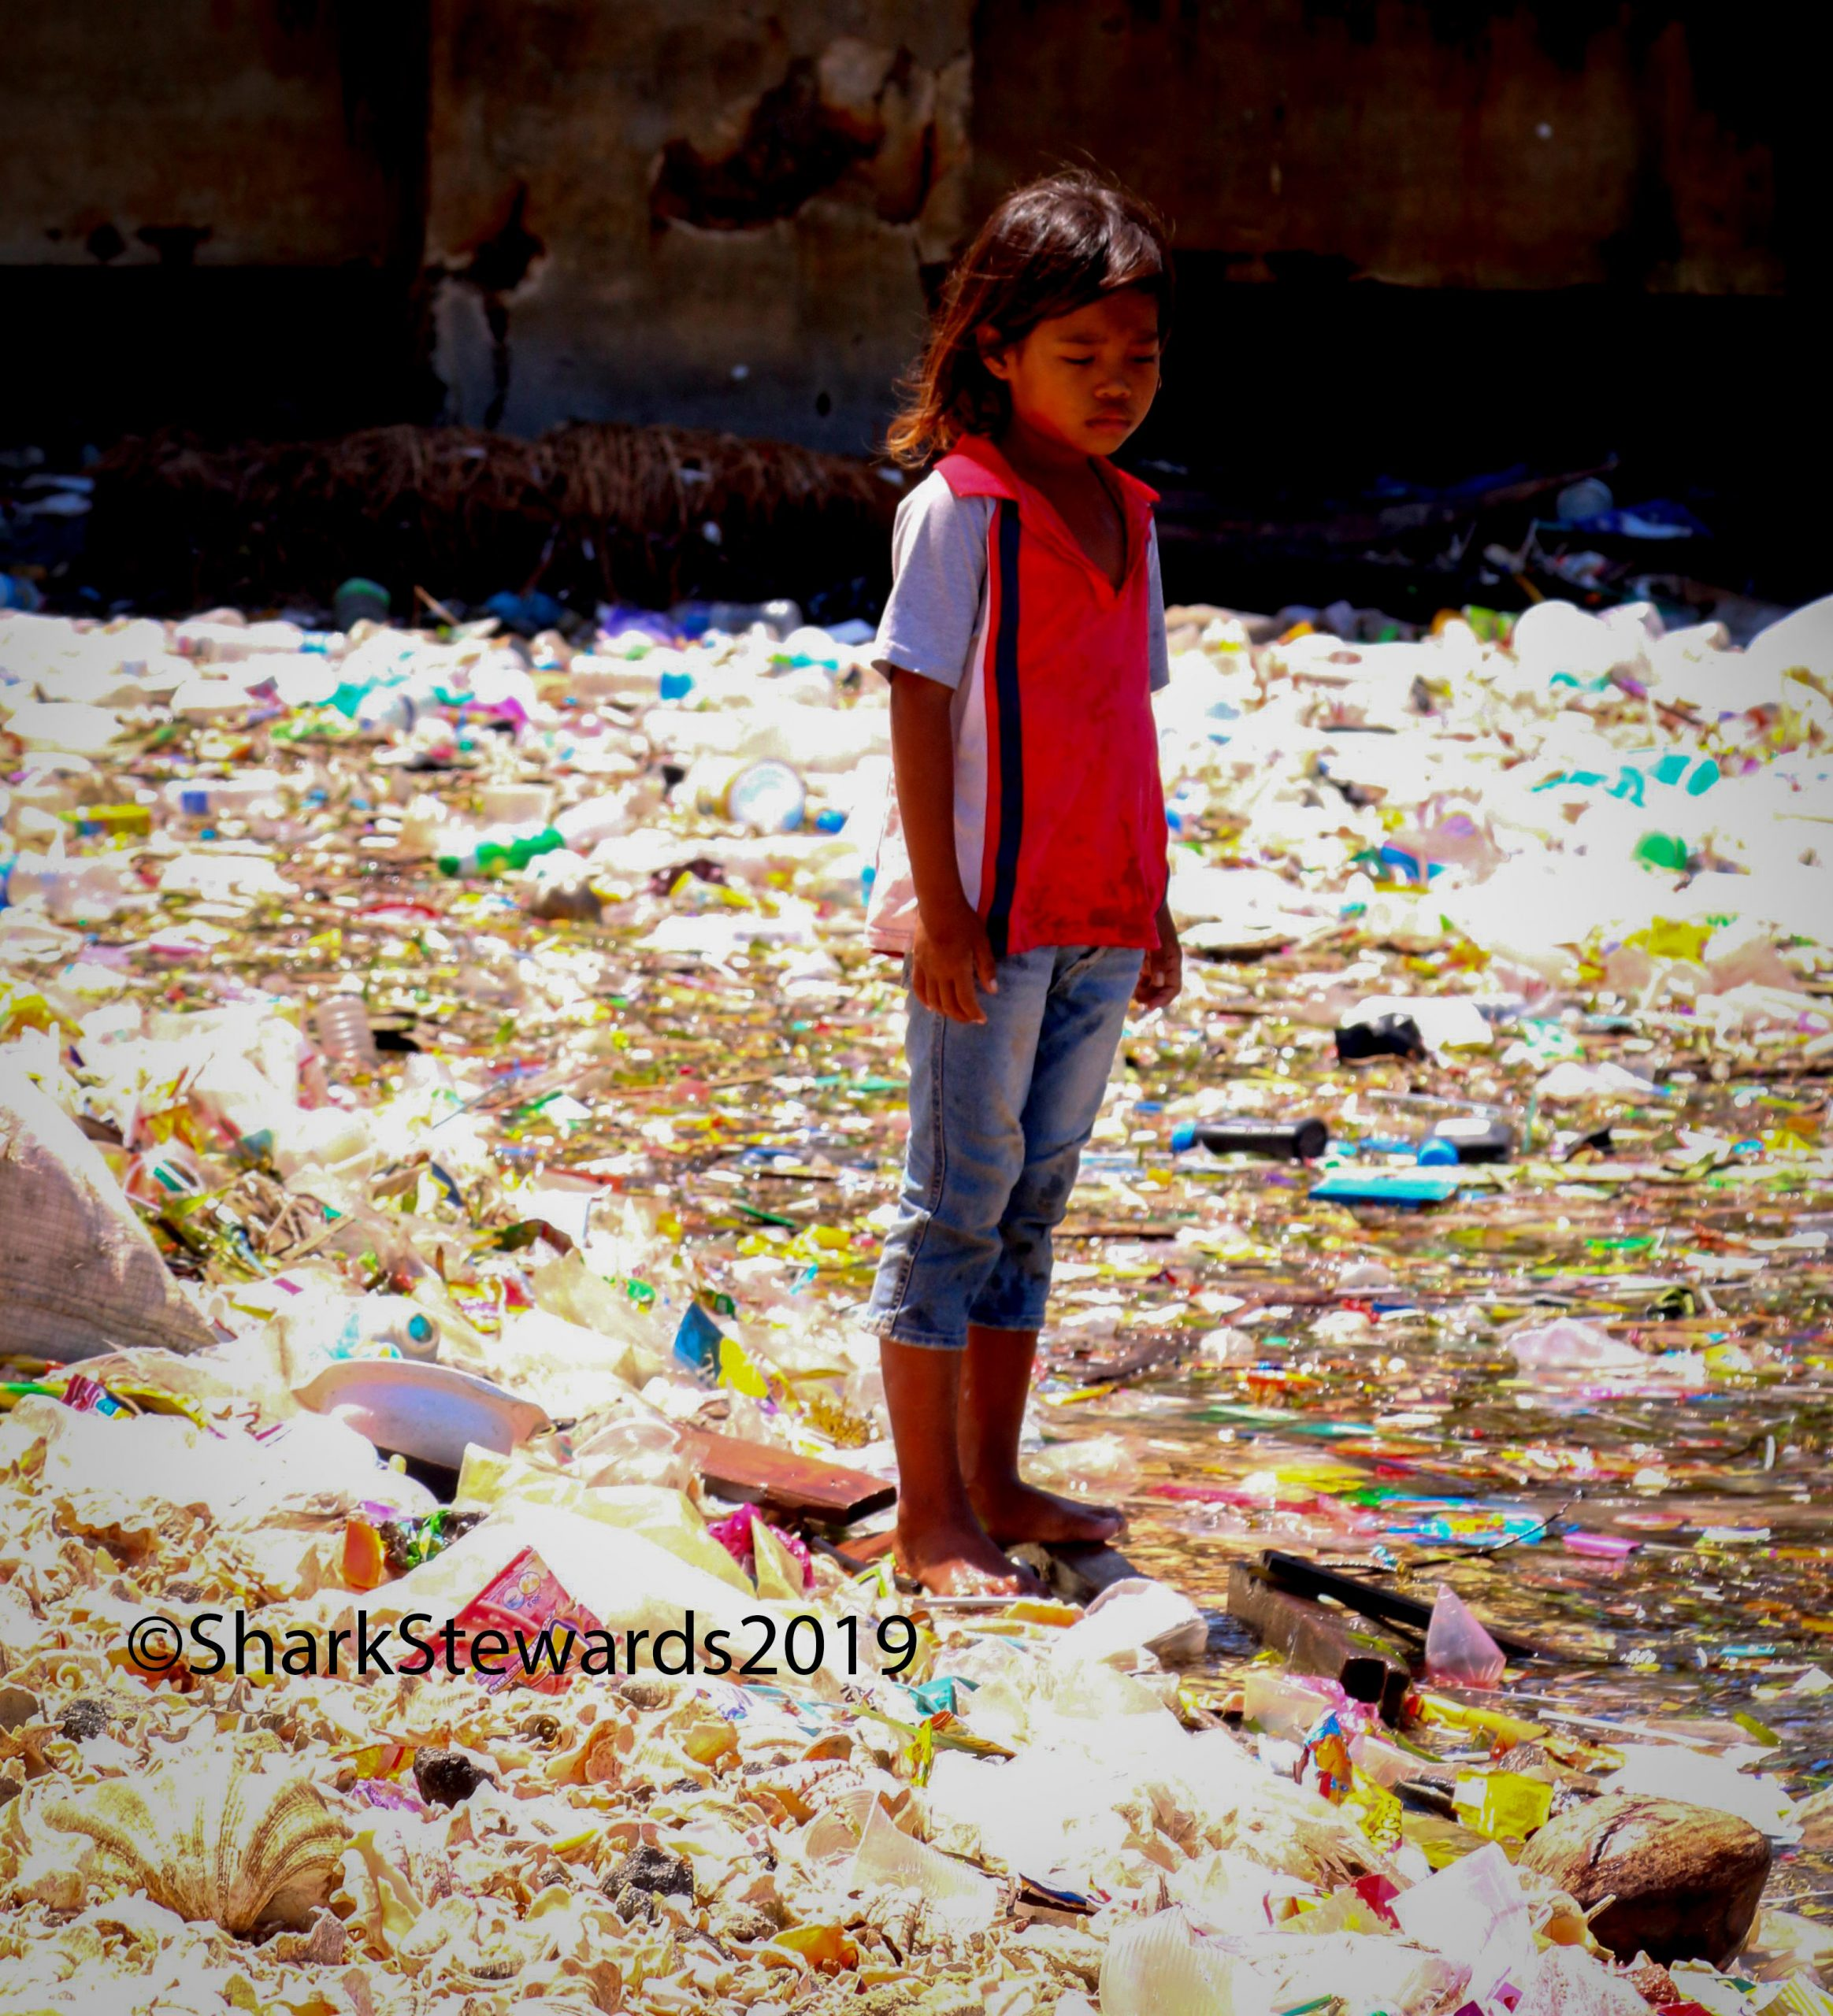 Malaysia Kid with Plastic small